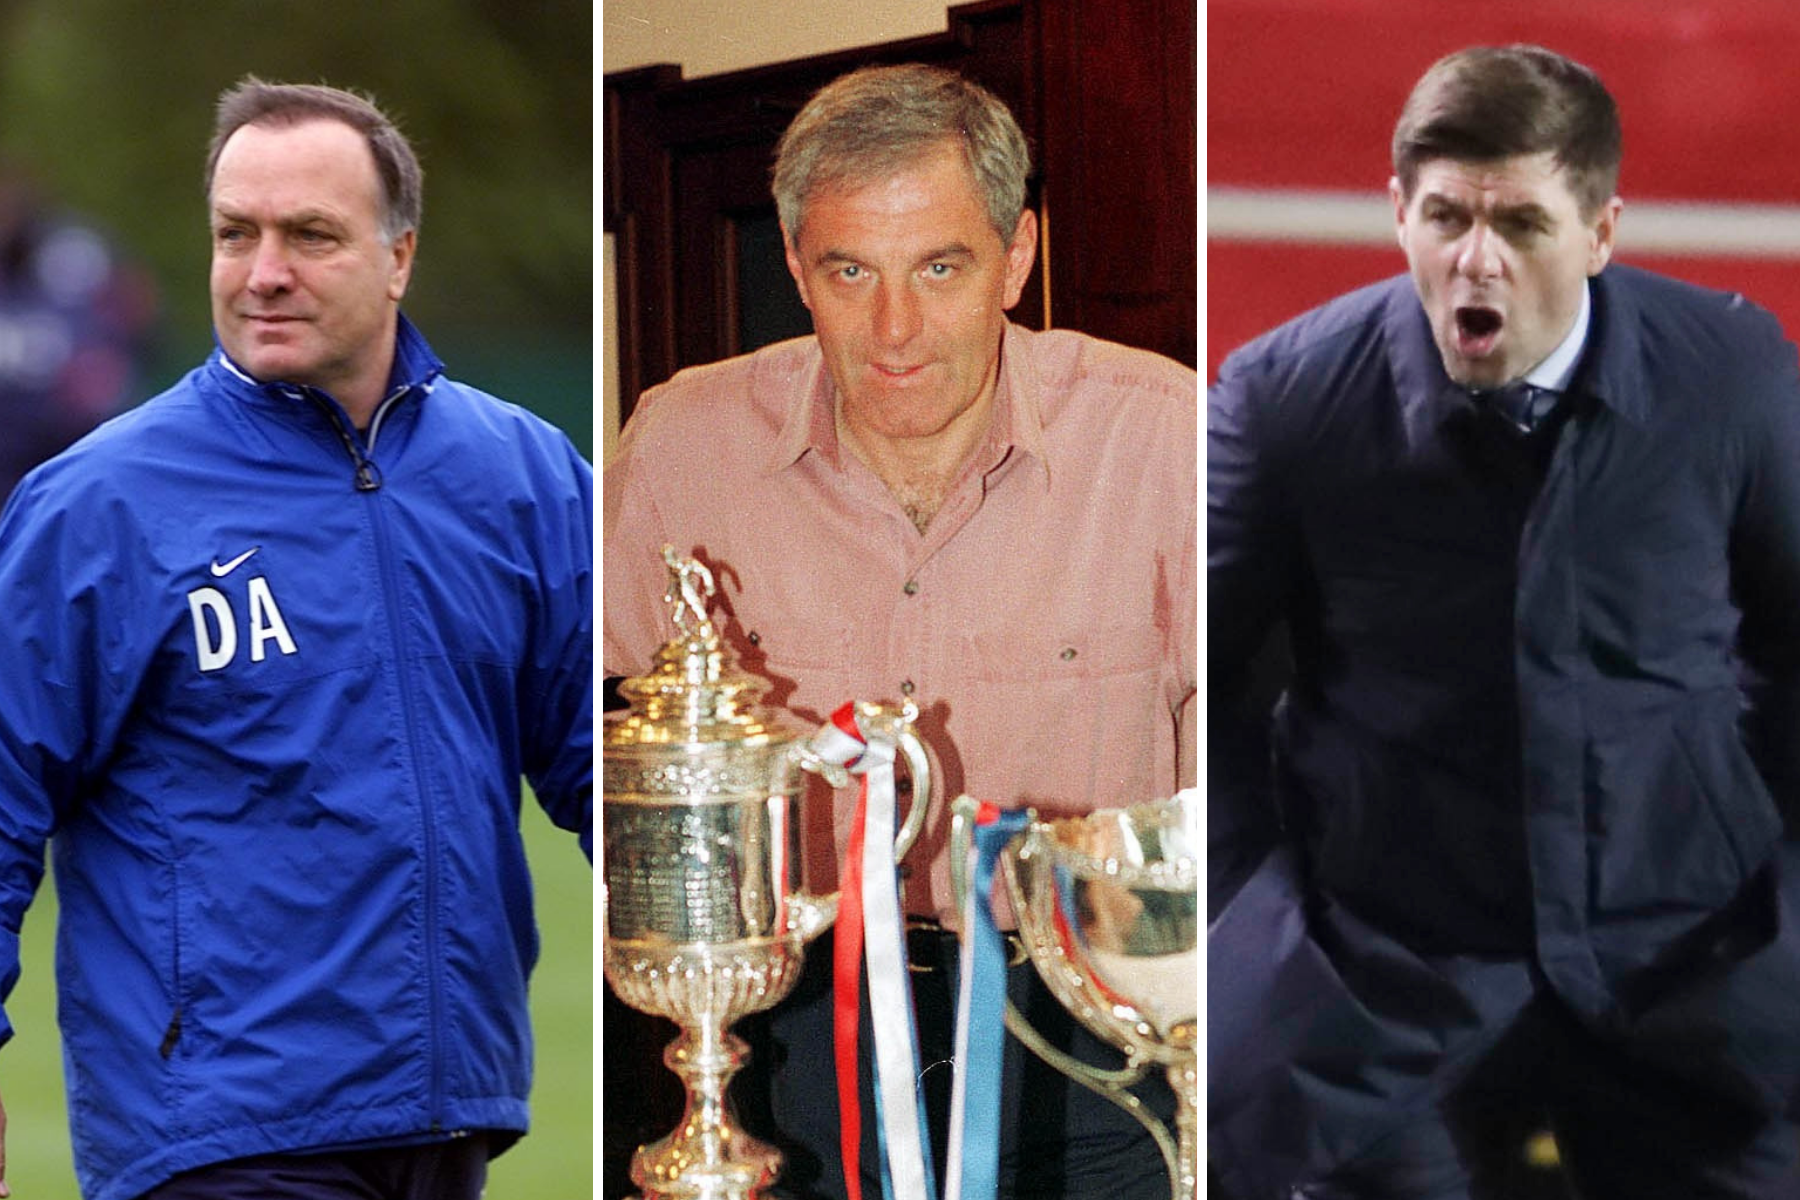 Why Rangers boss Steven Gerrard doesn't think he deserves to be mentioned along with Dick Advocaat and Walter Smith